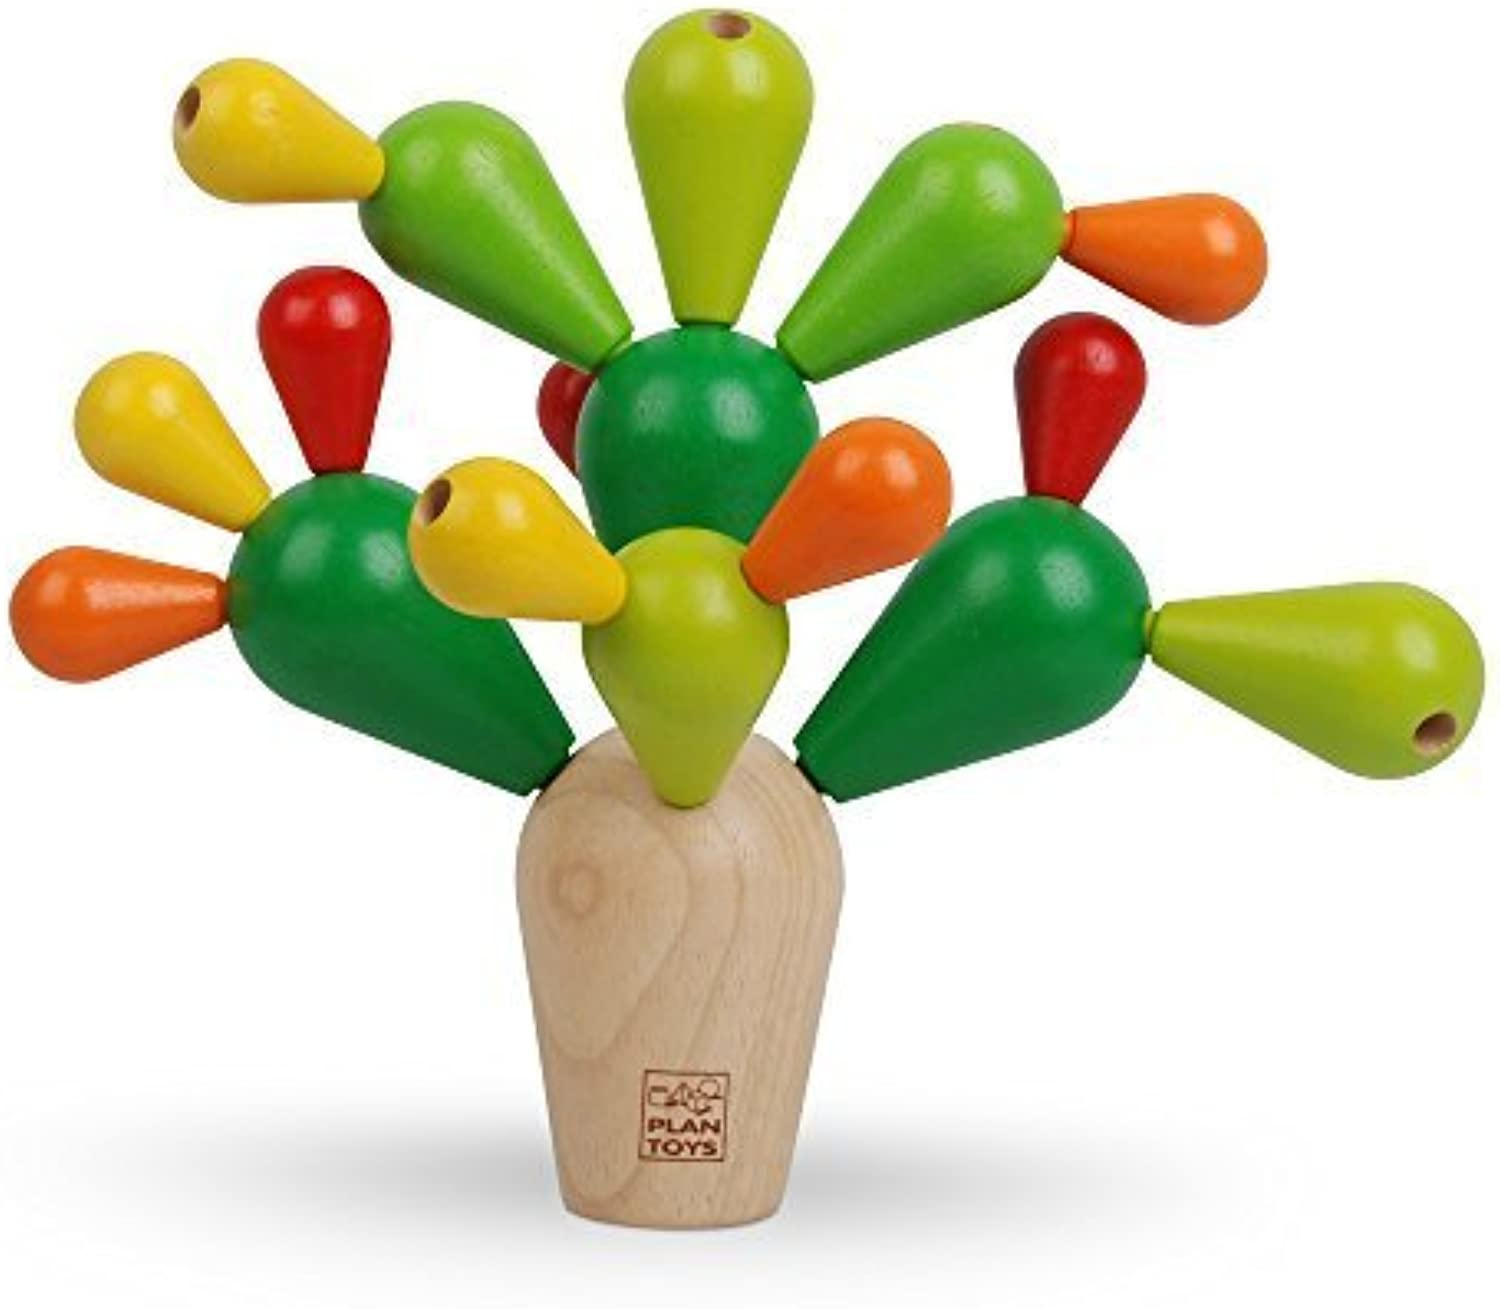 Plan Toys Plan Toy Balancing Cactus by PlanToys